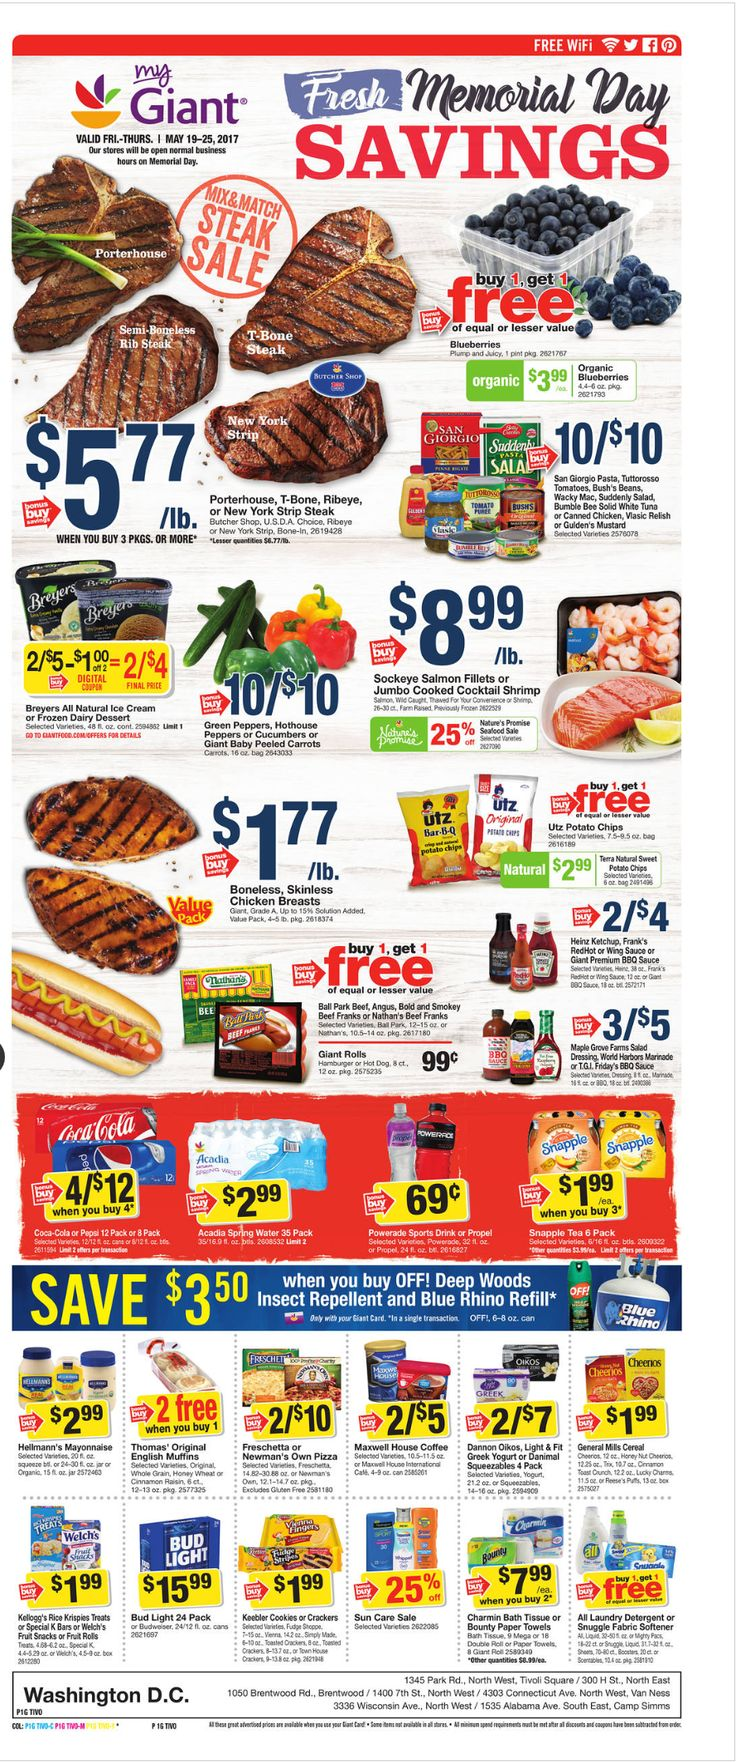 Giant Food Weekly Ad May 19 - 25, 2017 - http://www.olcatalog.com/grocery/giant-food-weekly-ad.html